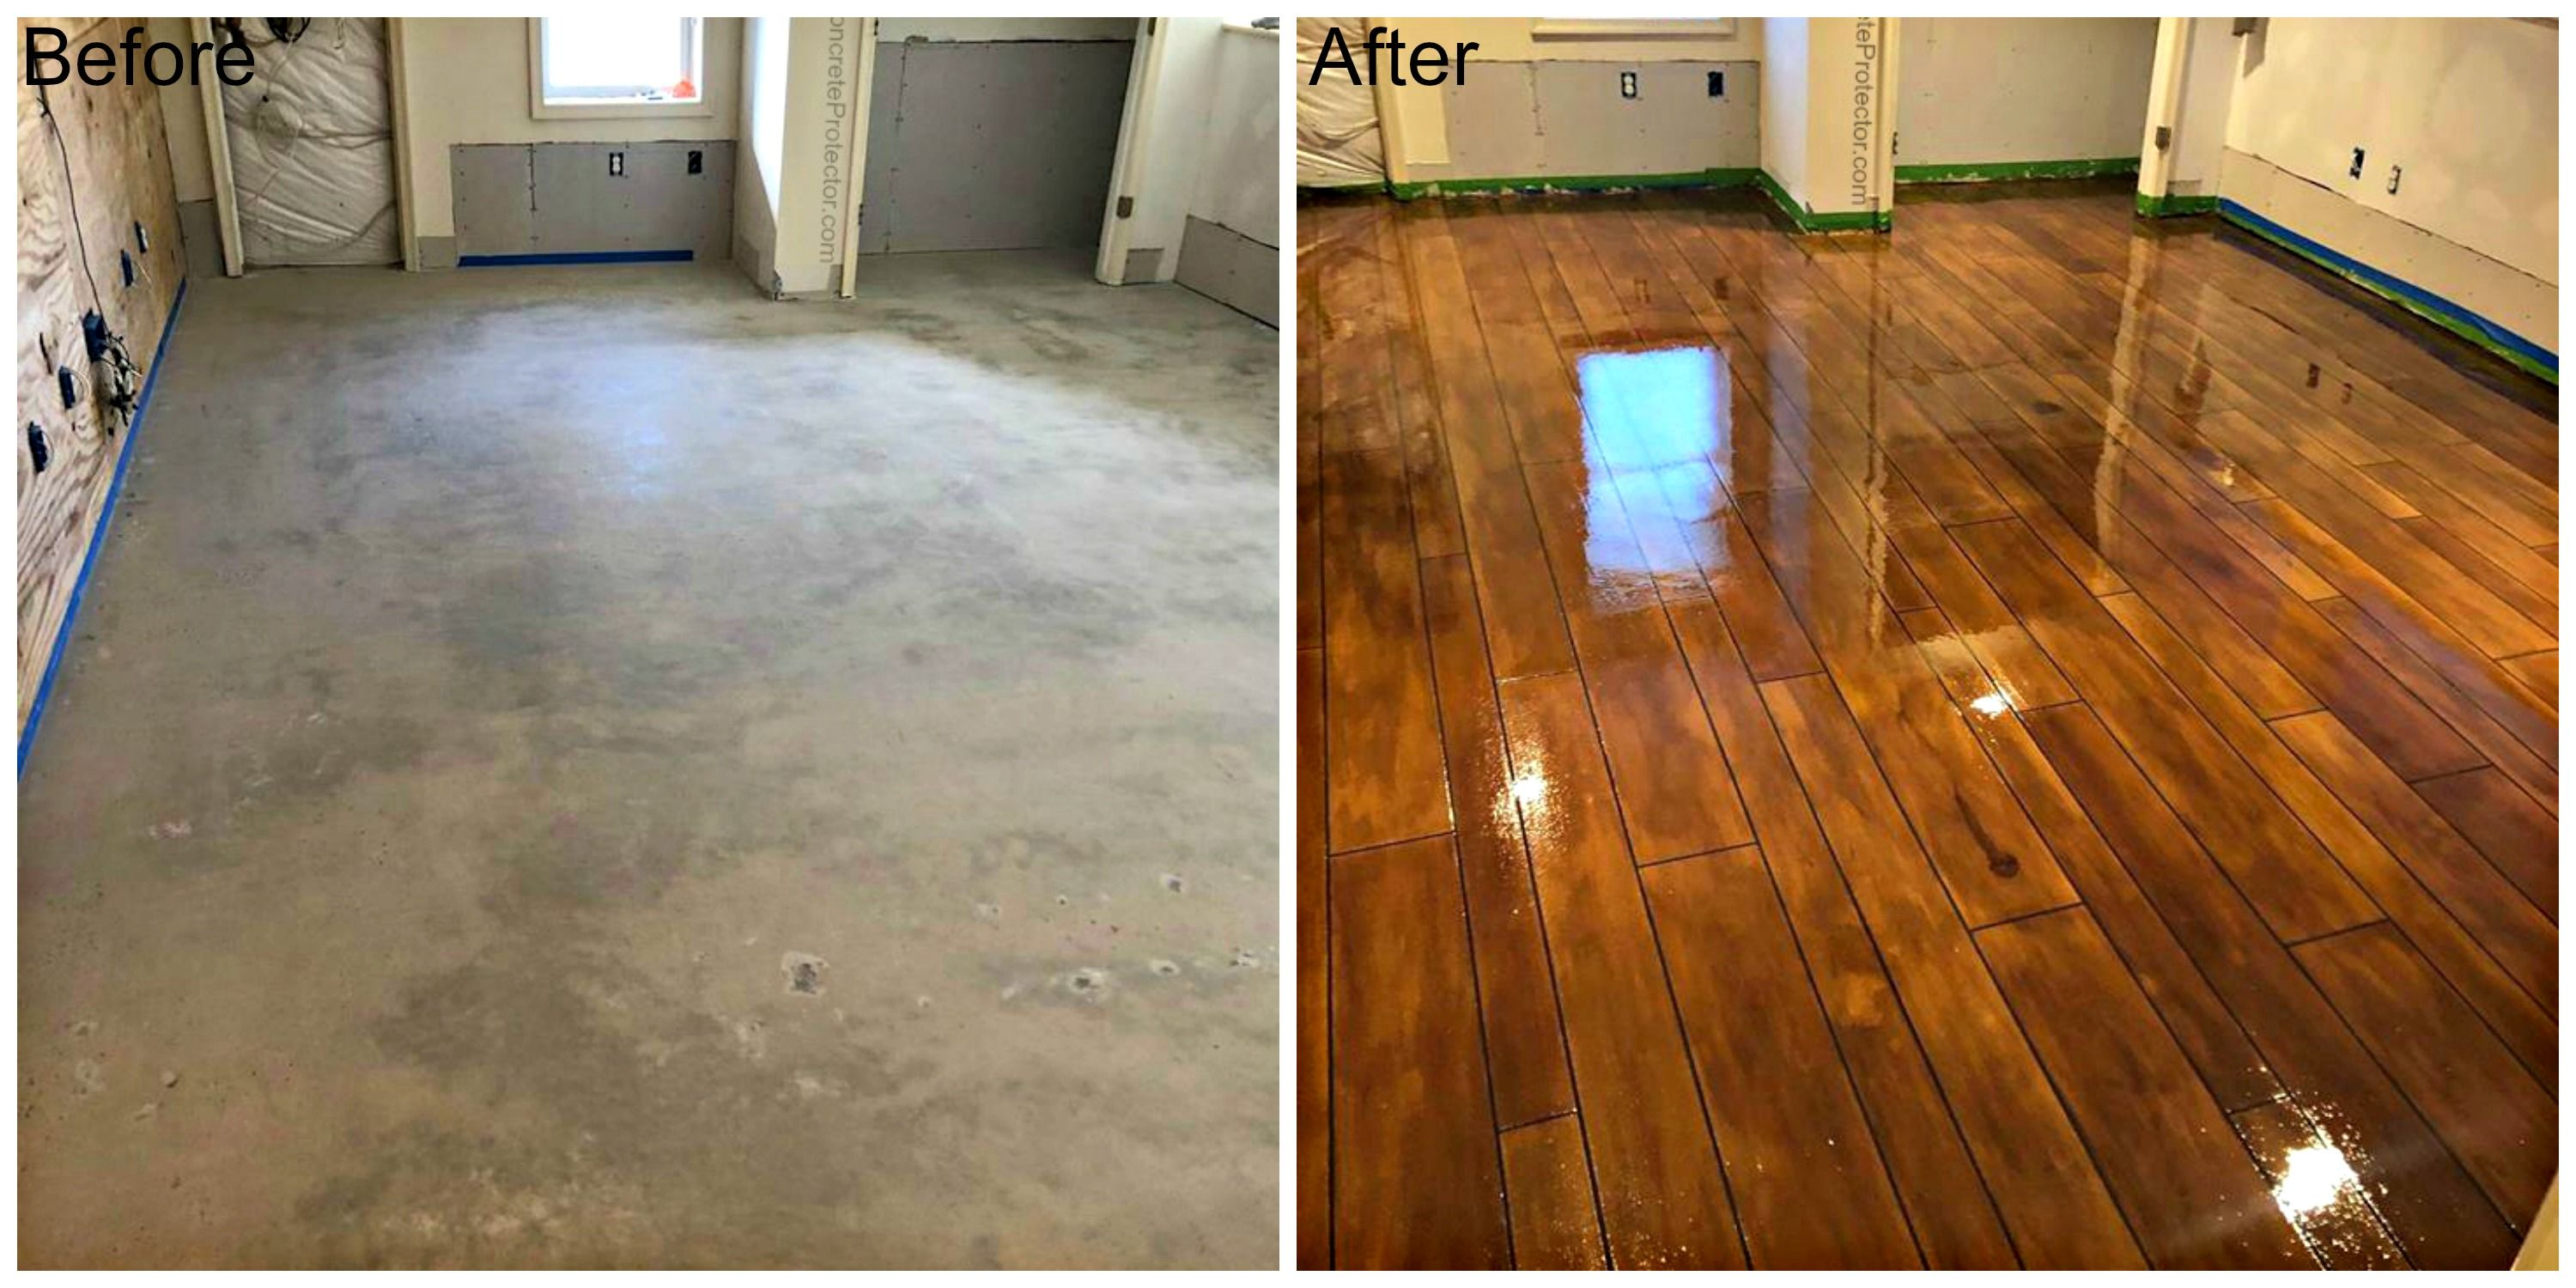 Tailored Concrete Coatings Winchester Va Decor